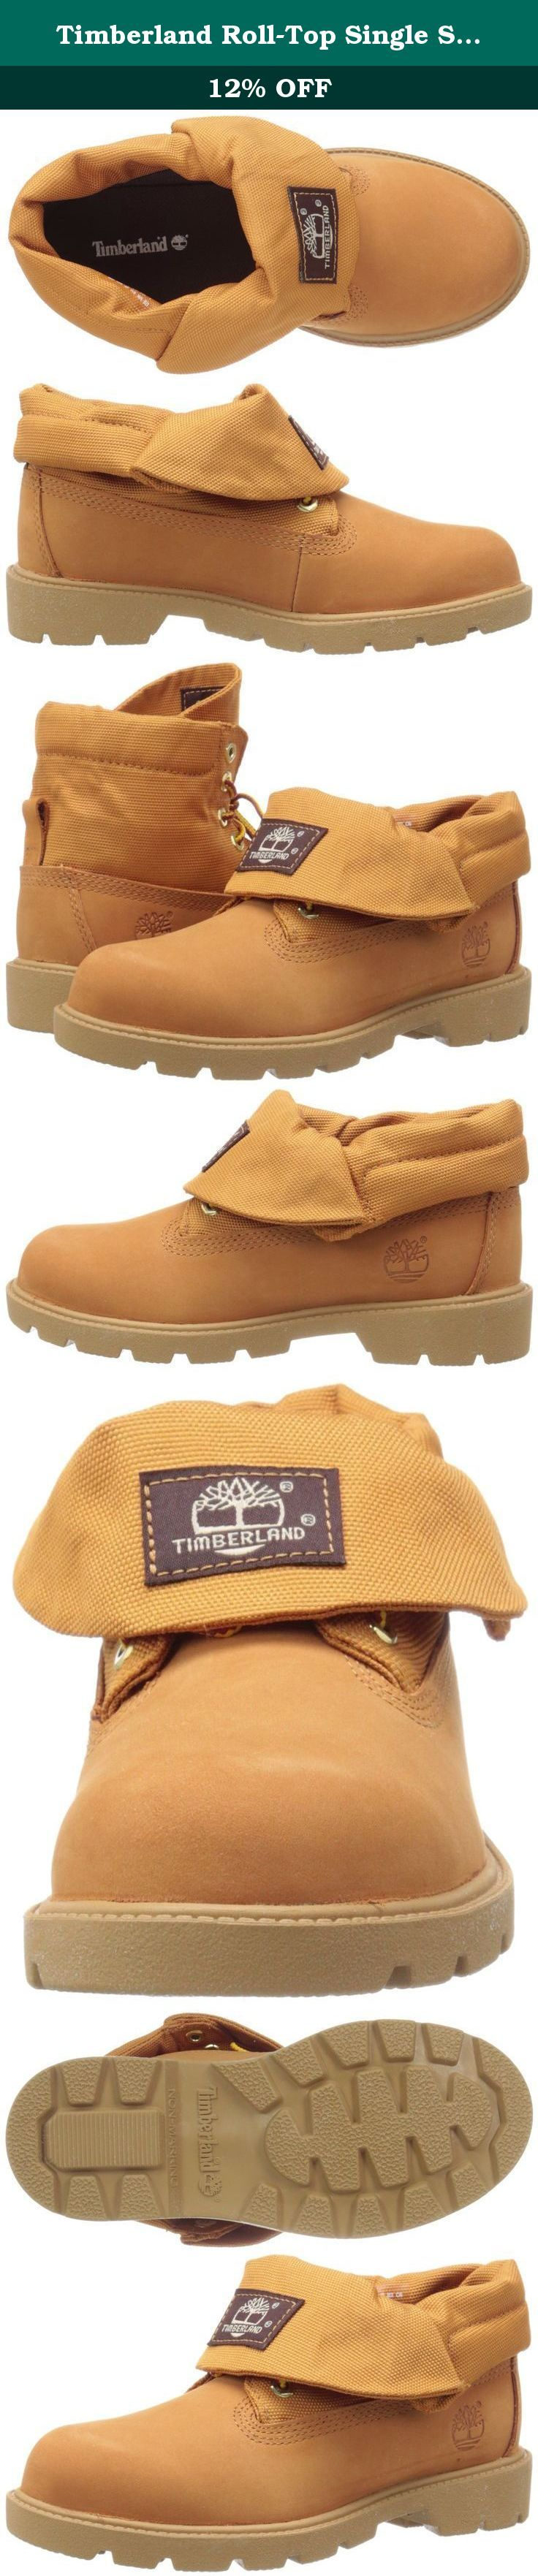 Timberland Roll-Top Single Shot Boot (Toddler/Little Kid/Big Kid), Wheat Nubuck, 7.5 M US Toddler. The Timberland Roll-Top Single Shot Boot is as functional as it is stylish. Its fold-over look gives it a fashionable appearance, while the lace closure offers an adjustable fit. The non-marking outsole of the boot provides dependable traction and grip while walking. Its steel shank gives support to the arch and ankle. Lined with PET mesh lining, the inside of the boot is non-abrasive for…